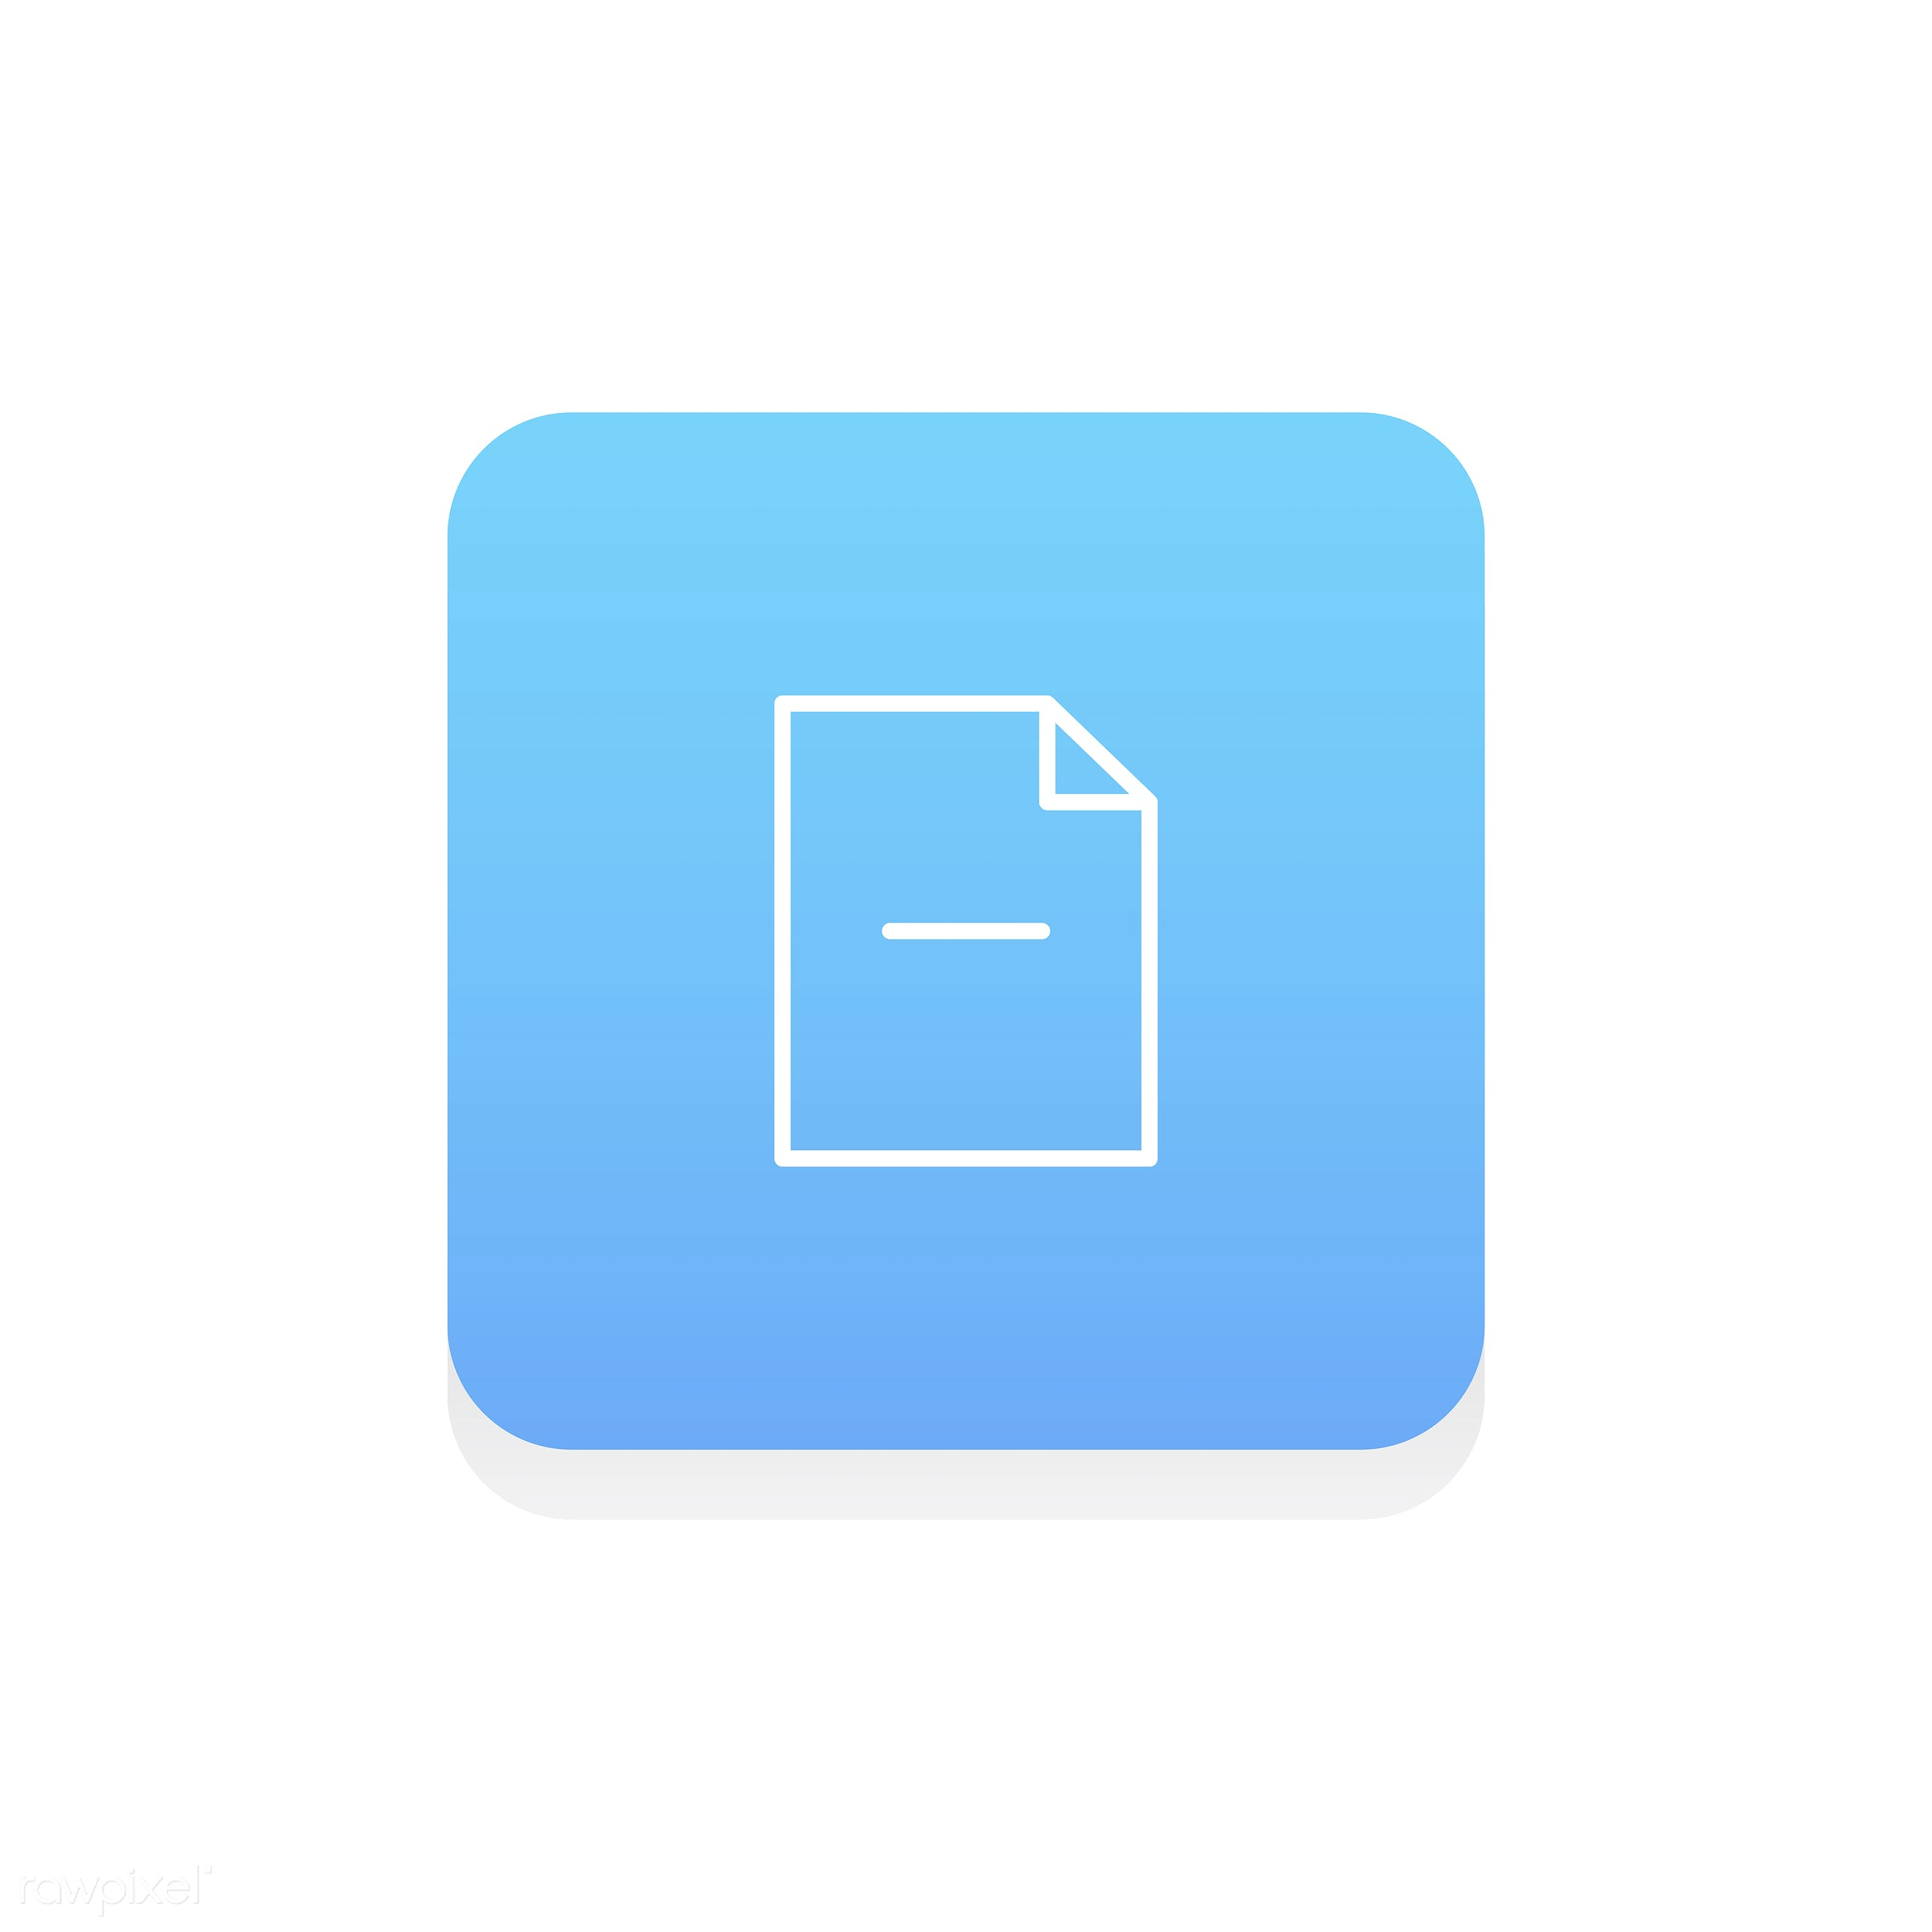 data, design, document, flat, graphic, icon, illustration, information, isolated, layout, style, symbol, vector, web, website